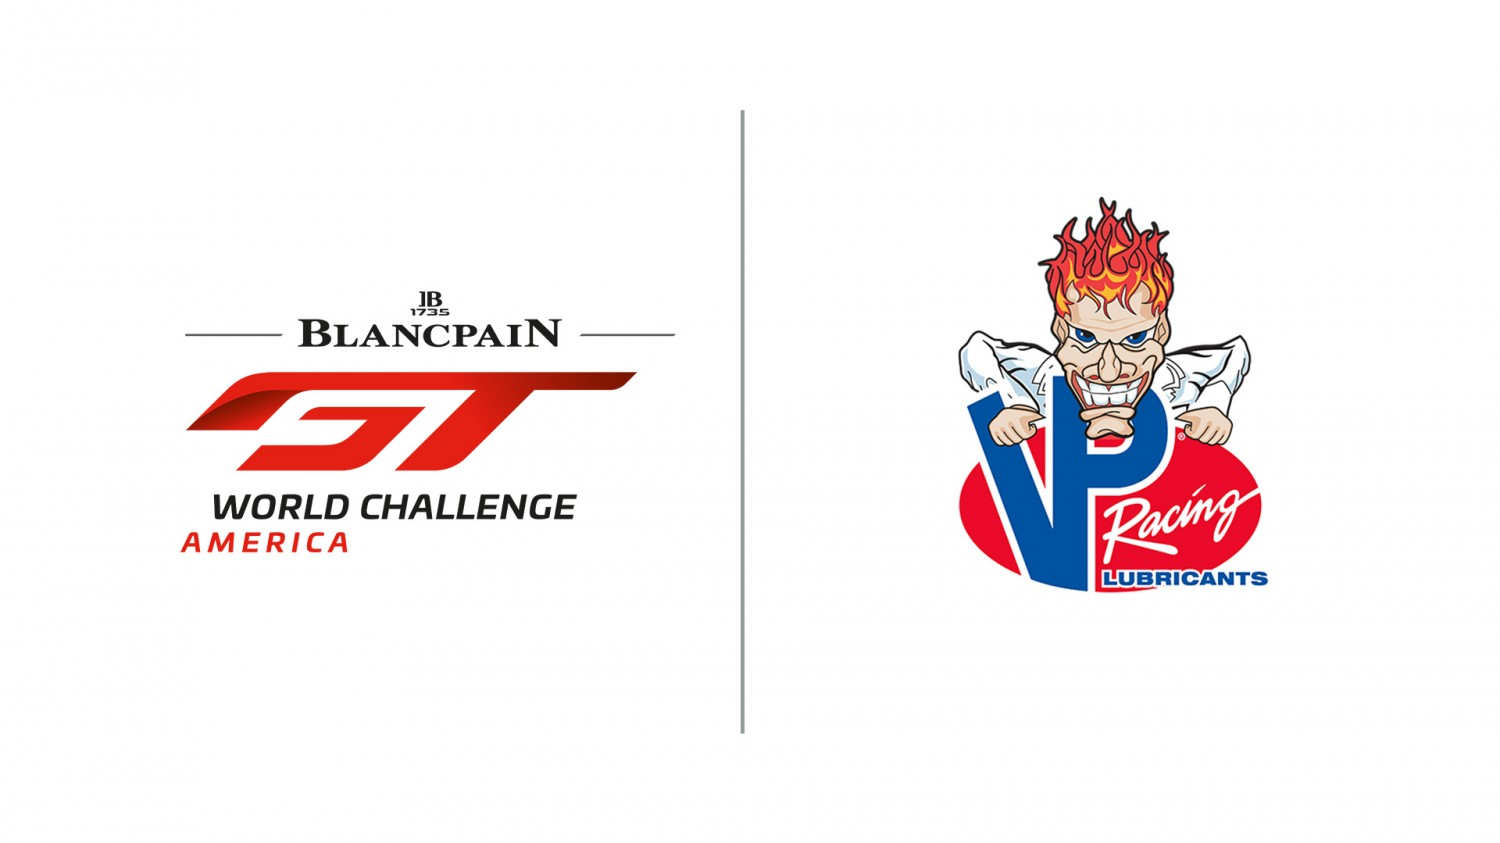 VP Racing Fuels Expands Blancpain GT World Challenge America Partnership Through its VP Racing Lubricants Line